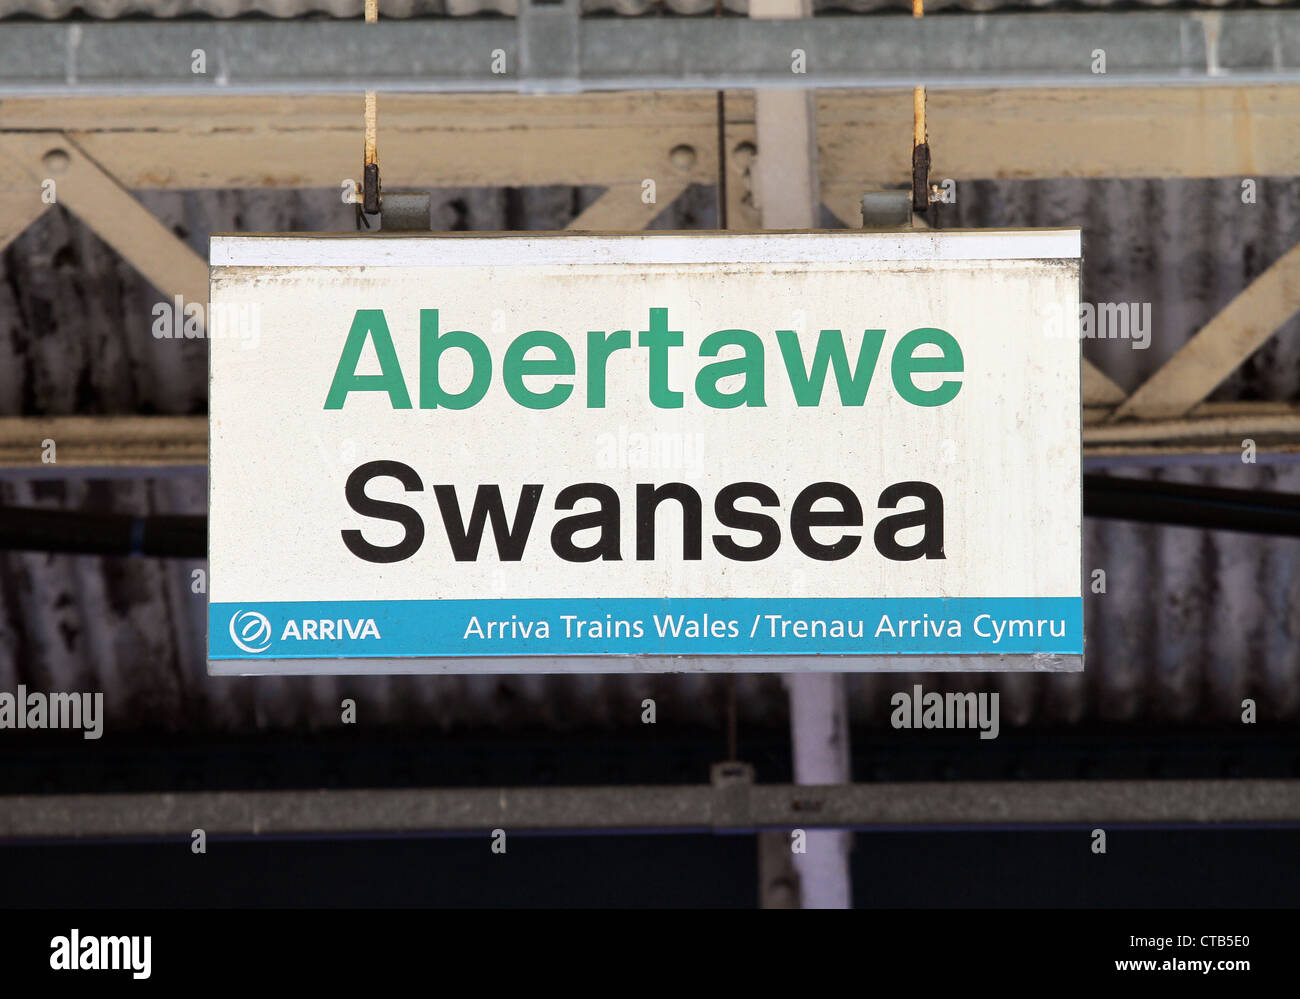 A Swansea Railway Station sign, south Wales, UK - Stock Image